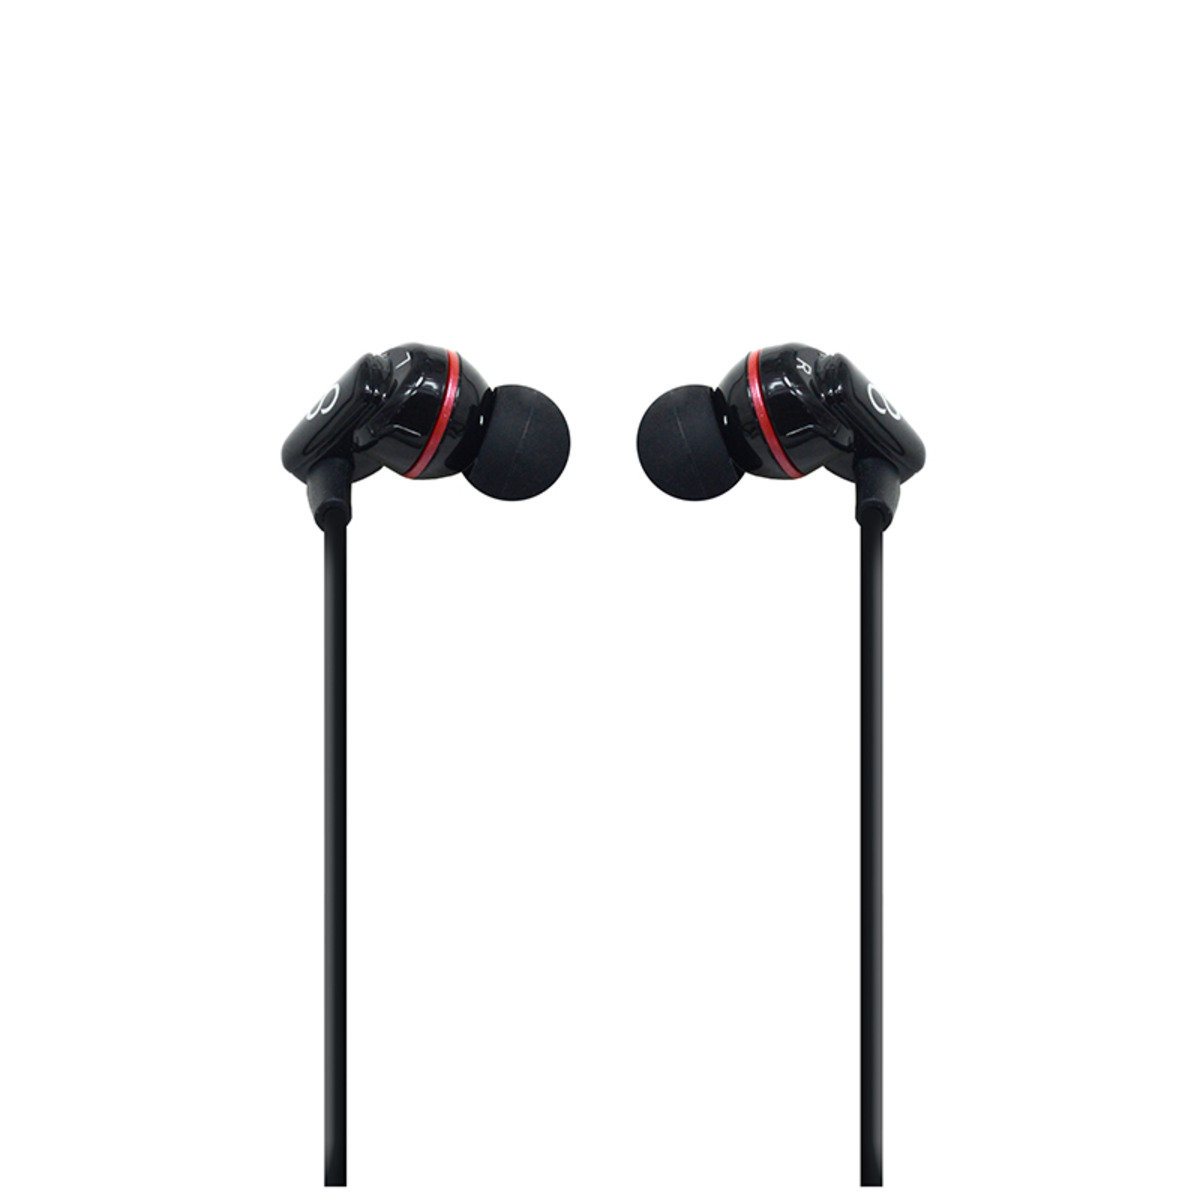 Fujitsu Live Audio In-Earphone A11 - Black